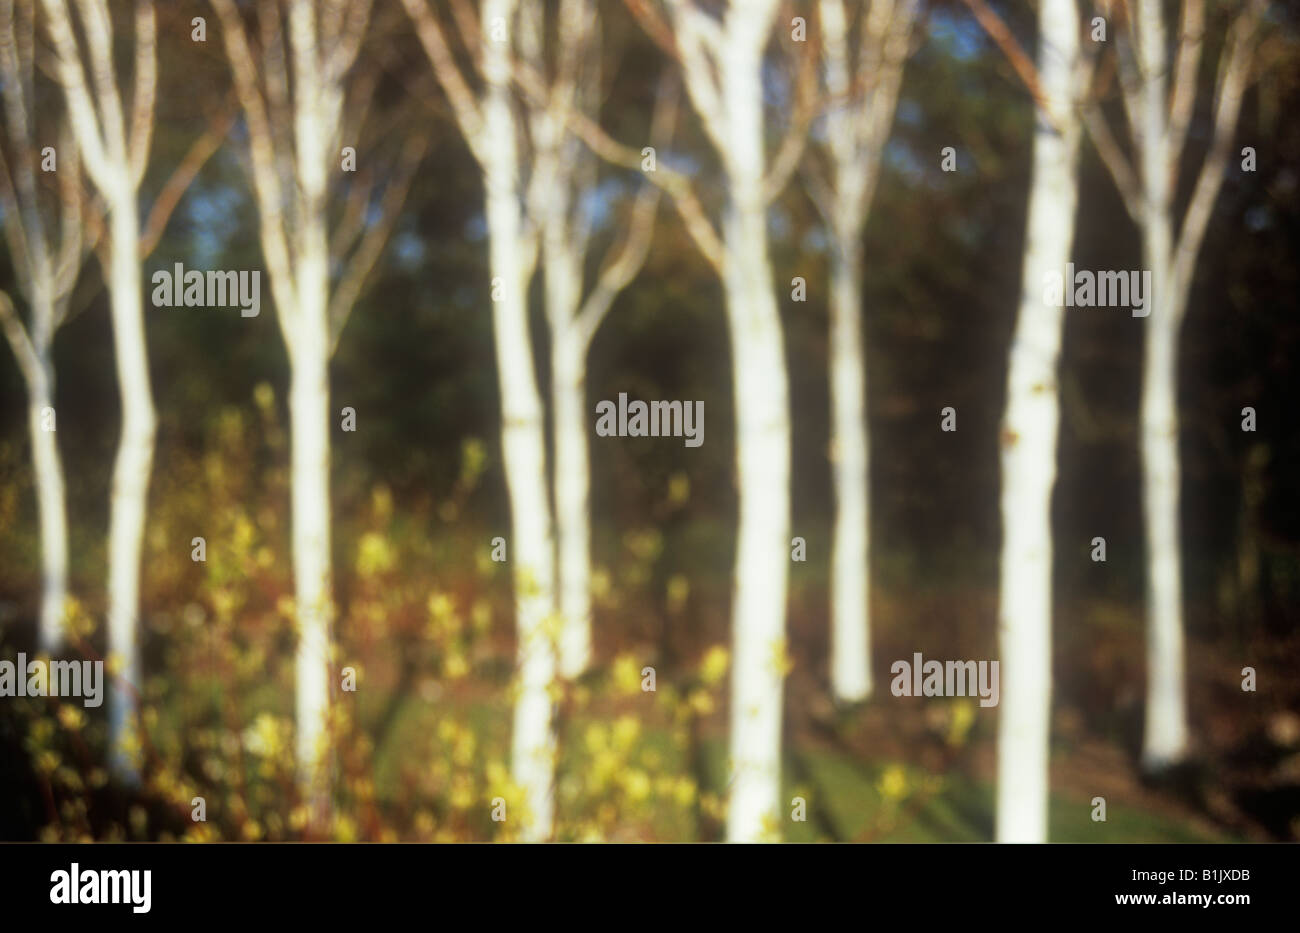 Impressionistic copse of nine white treetrunks of Silver birch with yellow buds and red stems of Dogwood - Stock Image